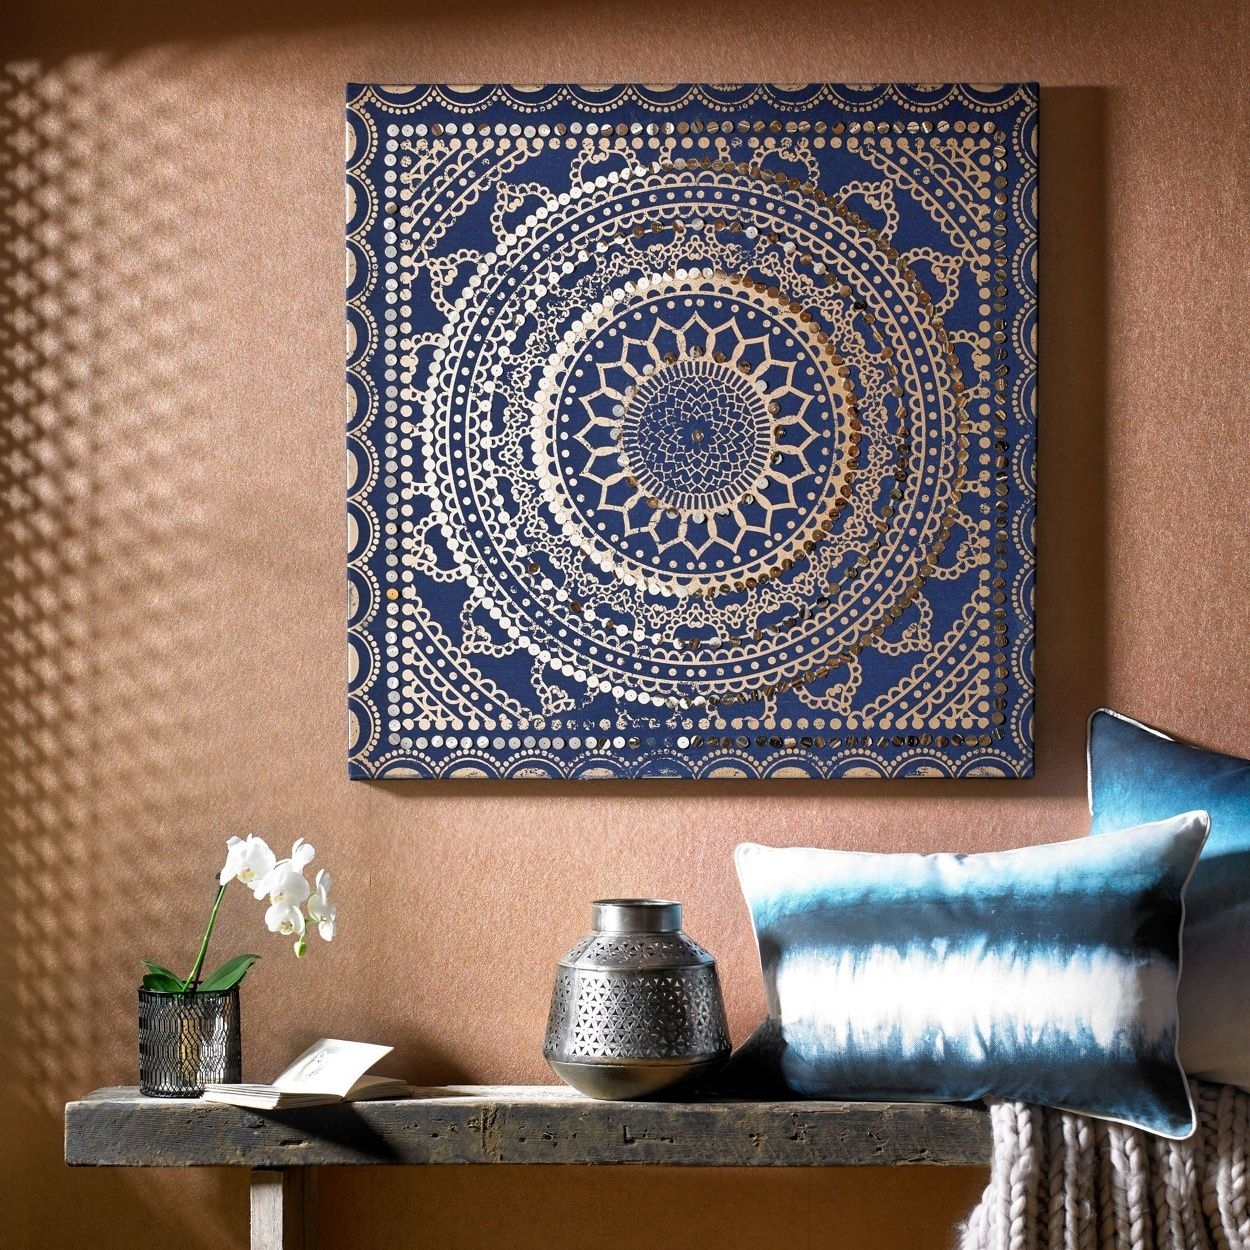 Make A Statement With This Moroccan Inspired Fabric Canvas (View 3 of 15)